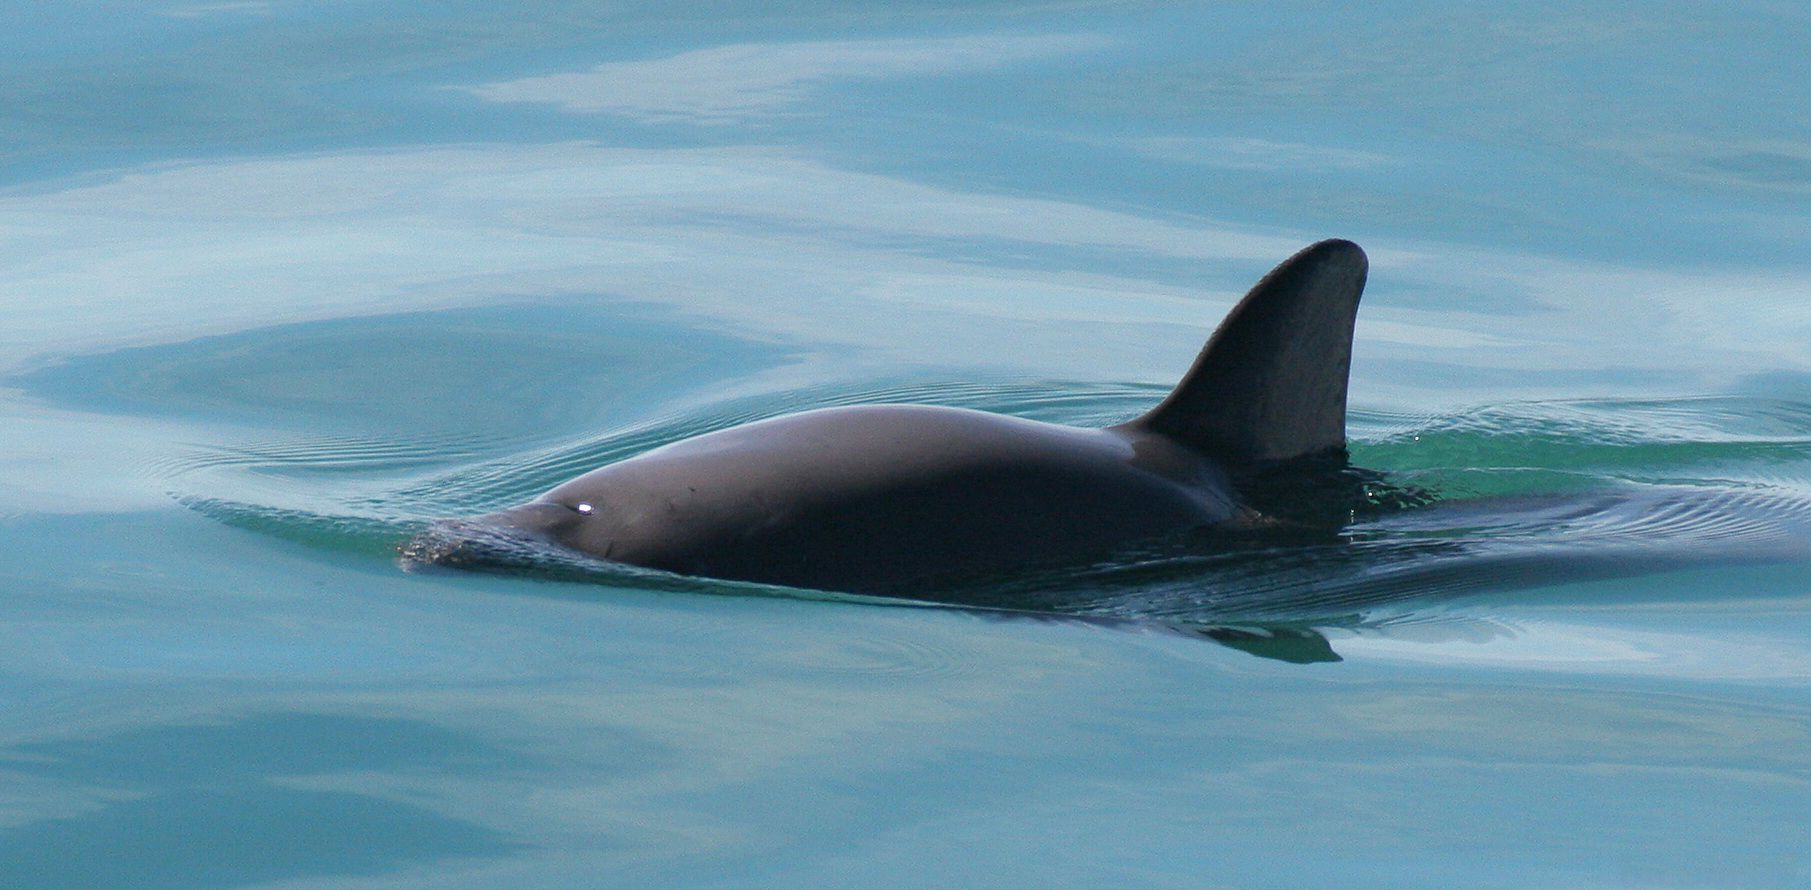 The vaquita in its home habitat in the Gulf of California.